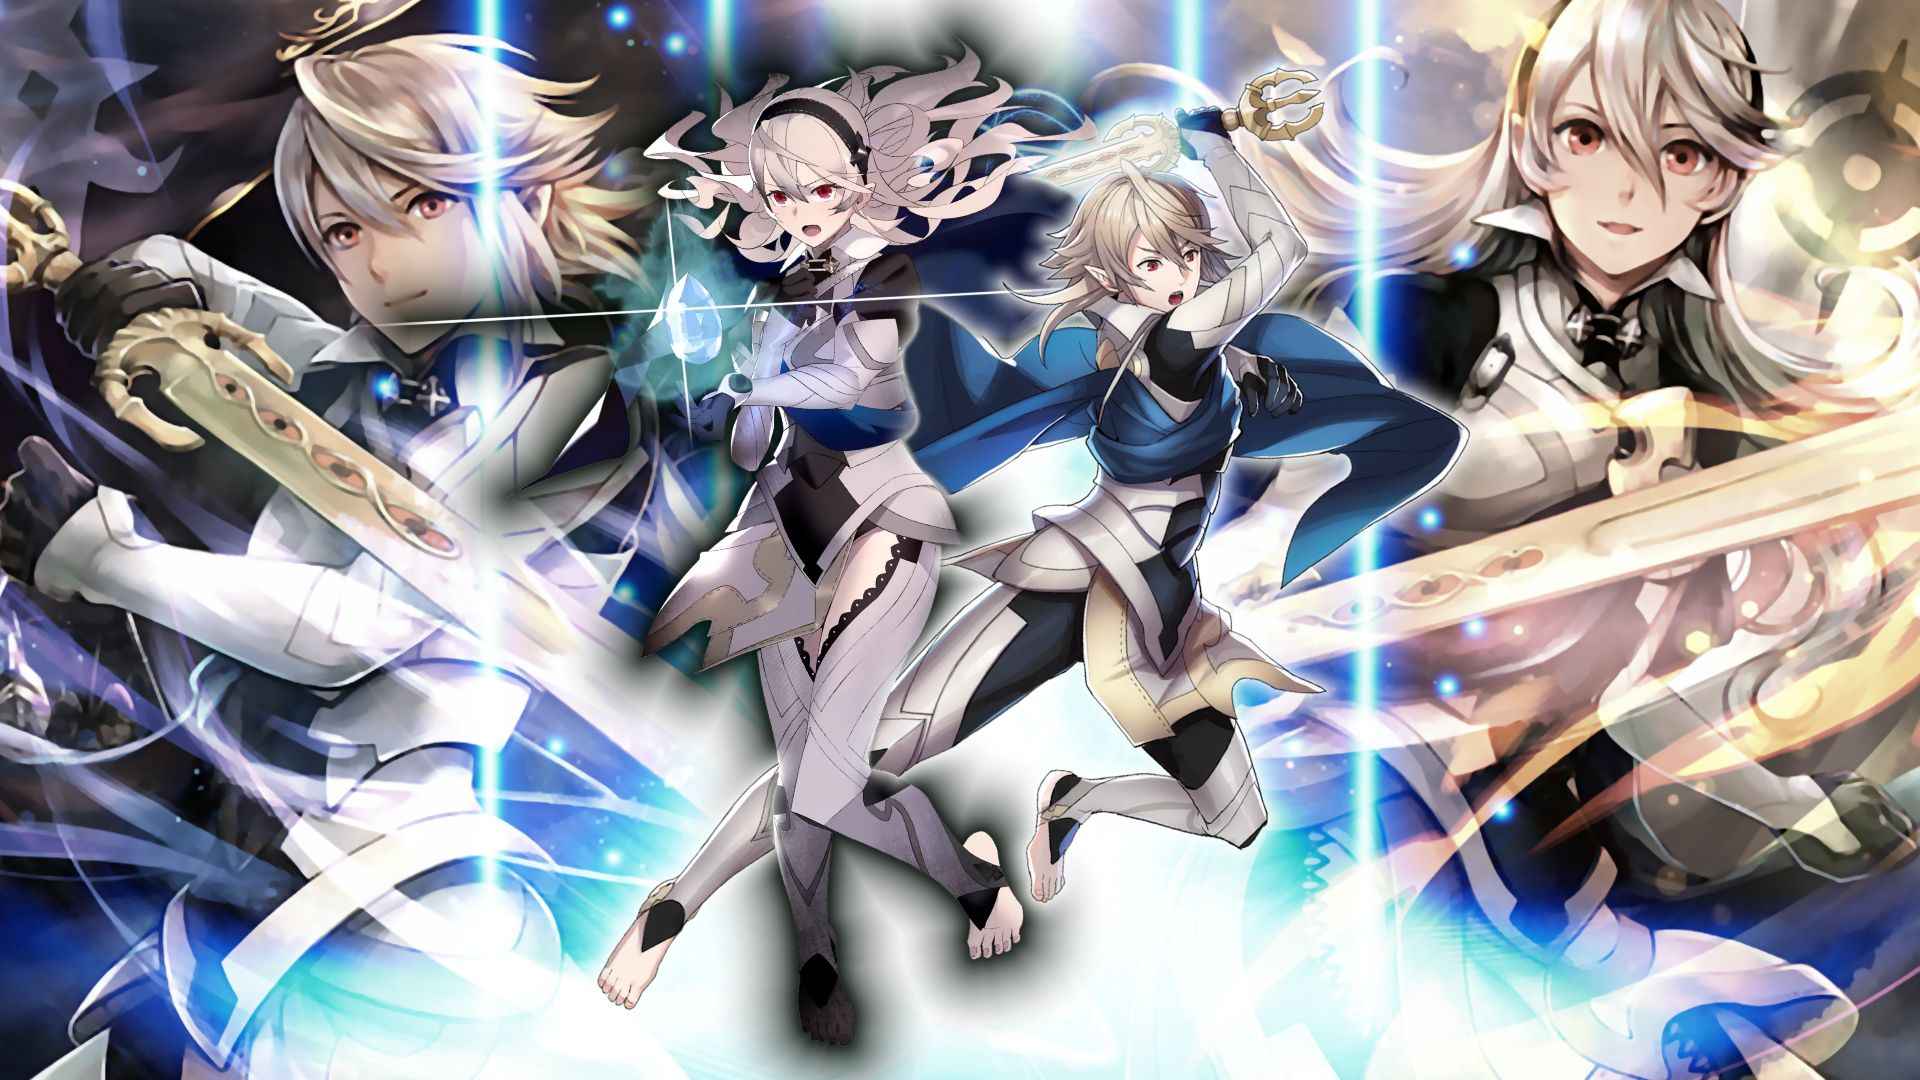 Fire Emblem Heroes Wallpaper Corrin By Incognitoza On Deviantart